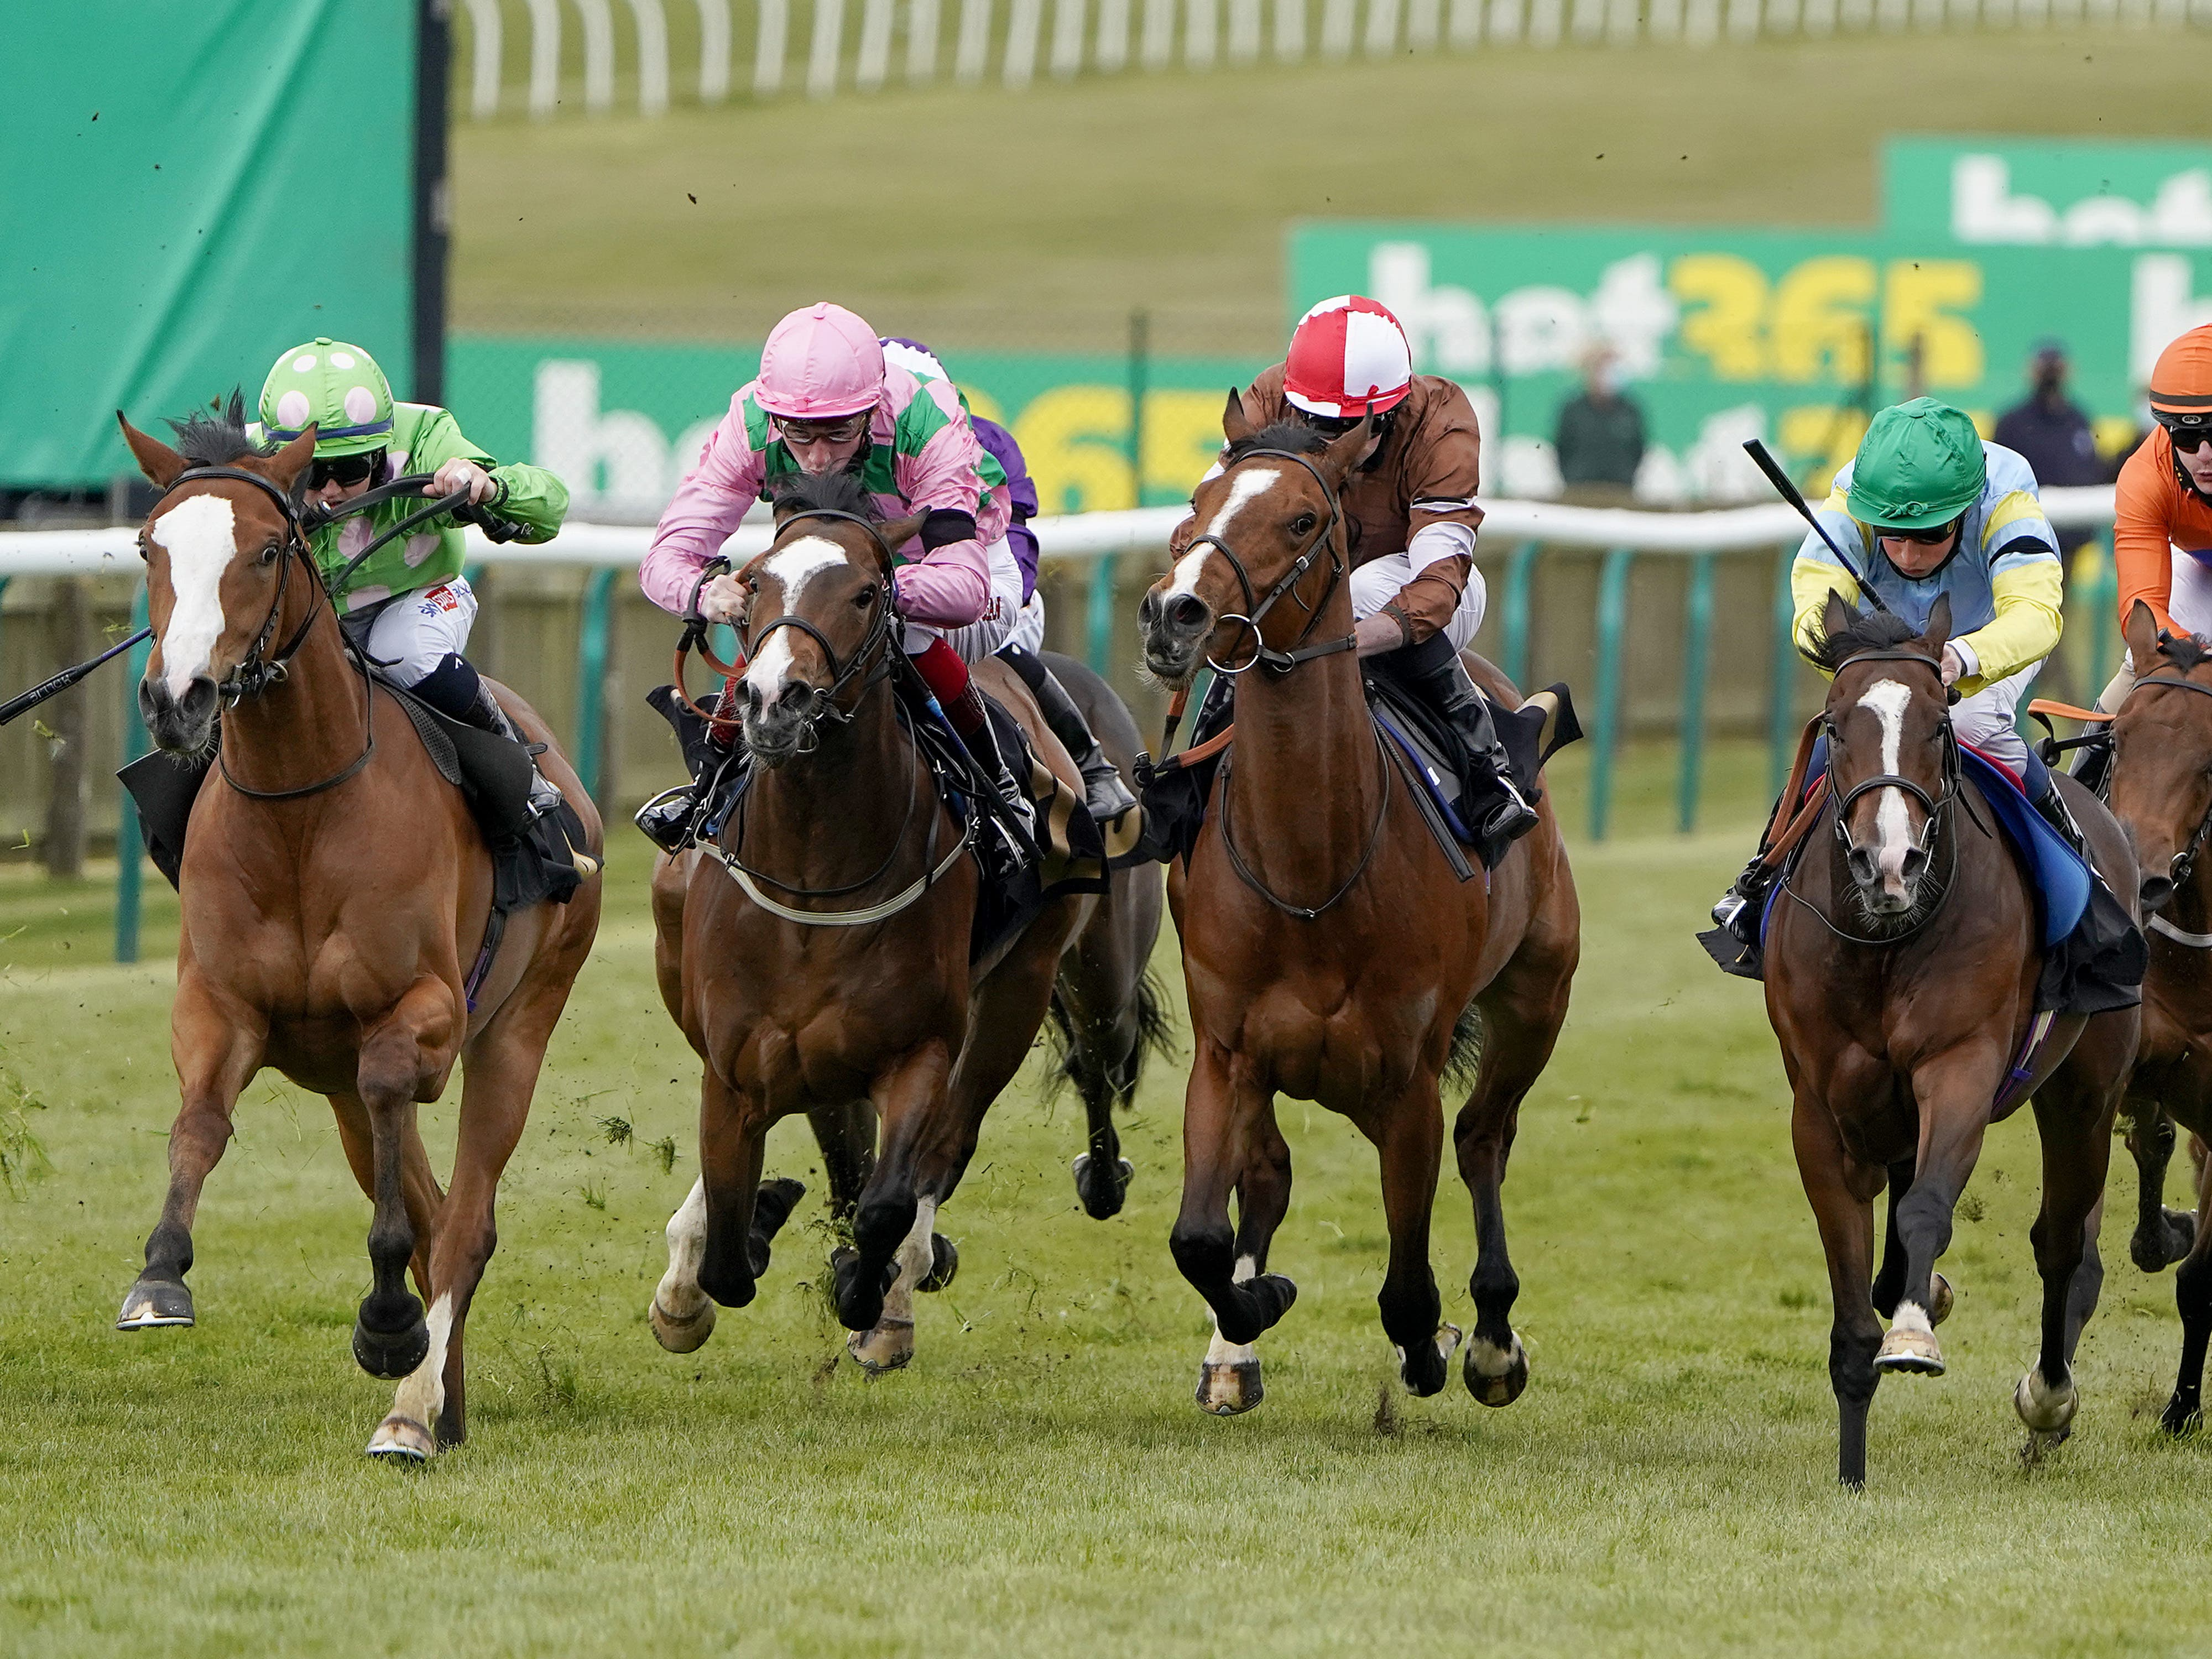 Hollie Doyle riding Desert Dreamer (left) on their way to winning The bet365 British EBF Maiden Fillies' Stakes at Newmarket Racecourse (Alan Crowhurst/PA)